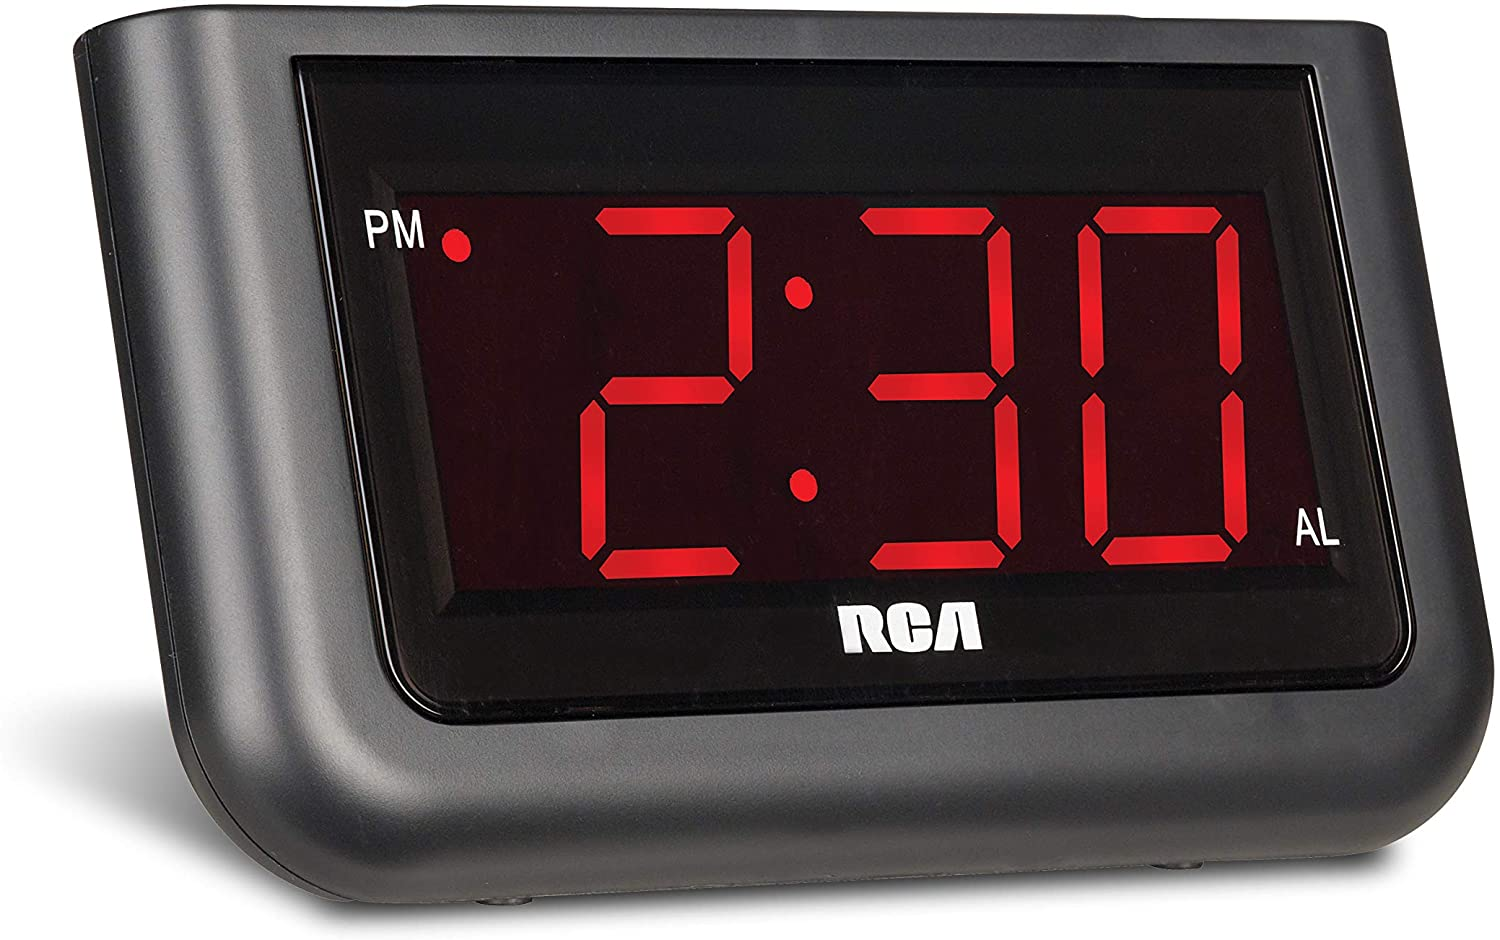 RCA Digital Alarm Clock